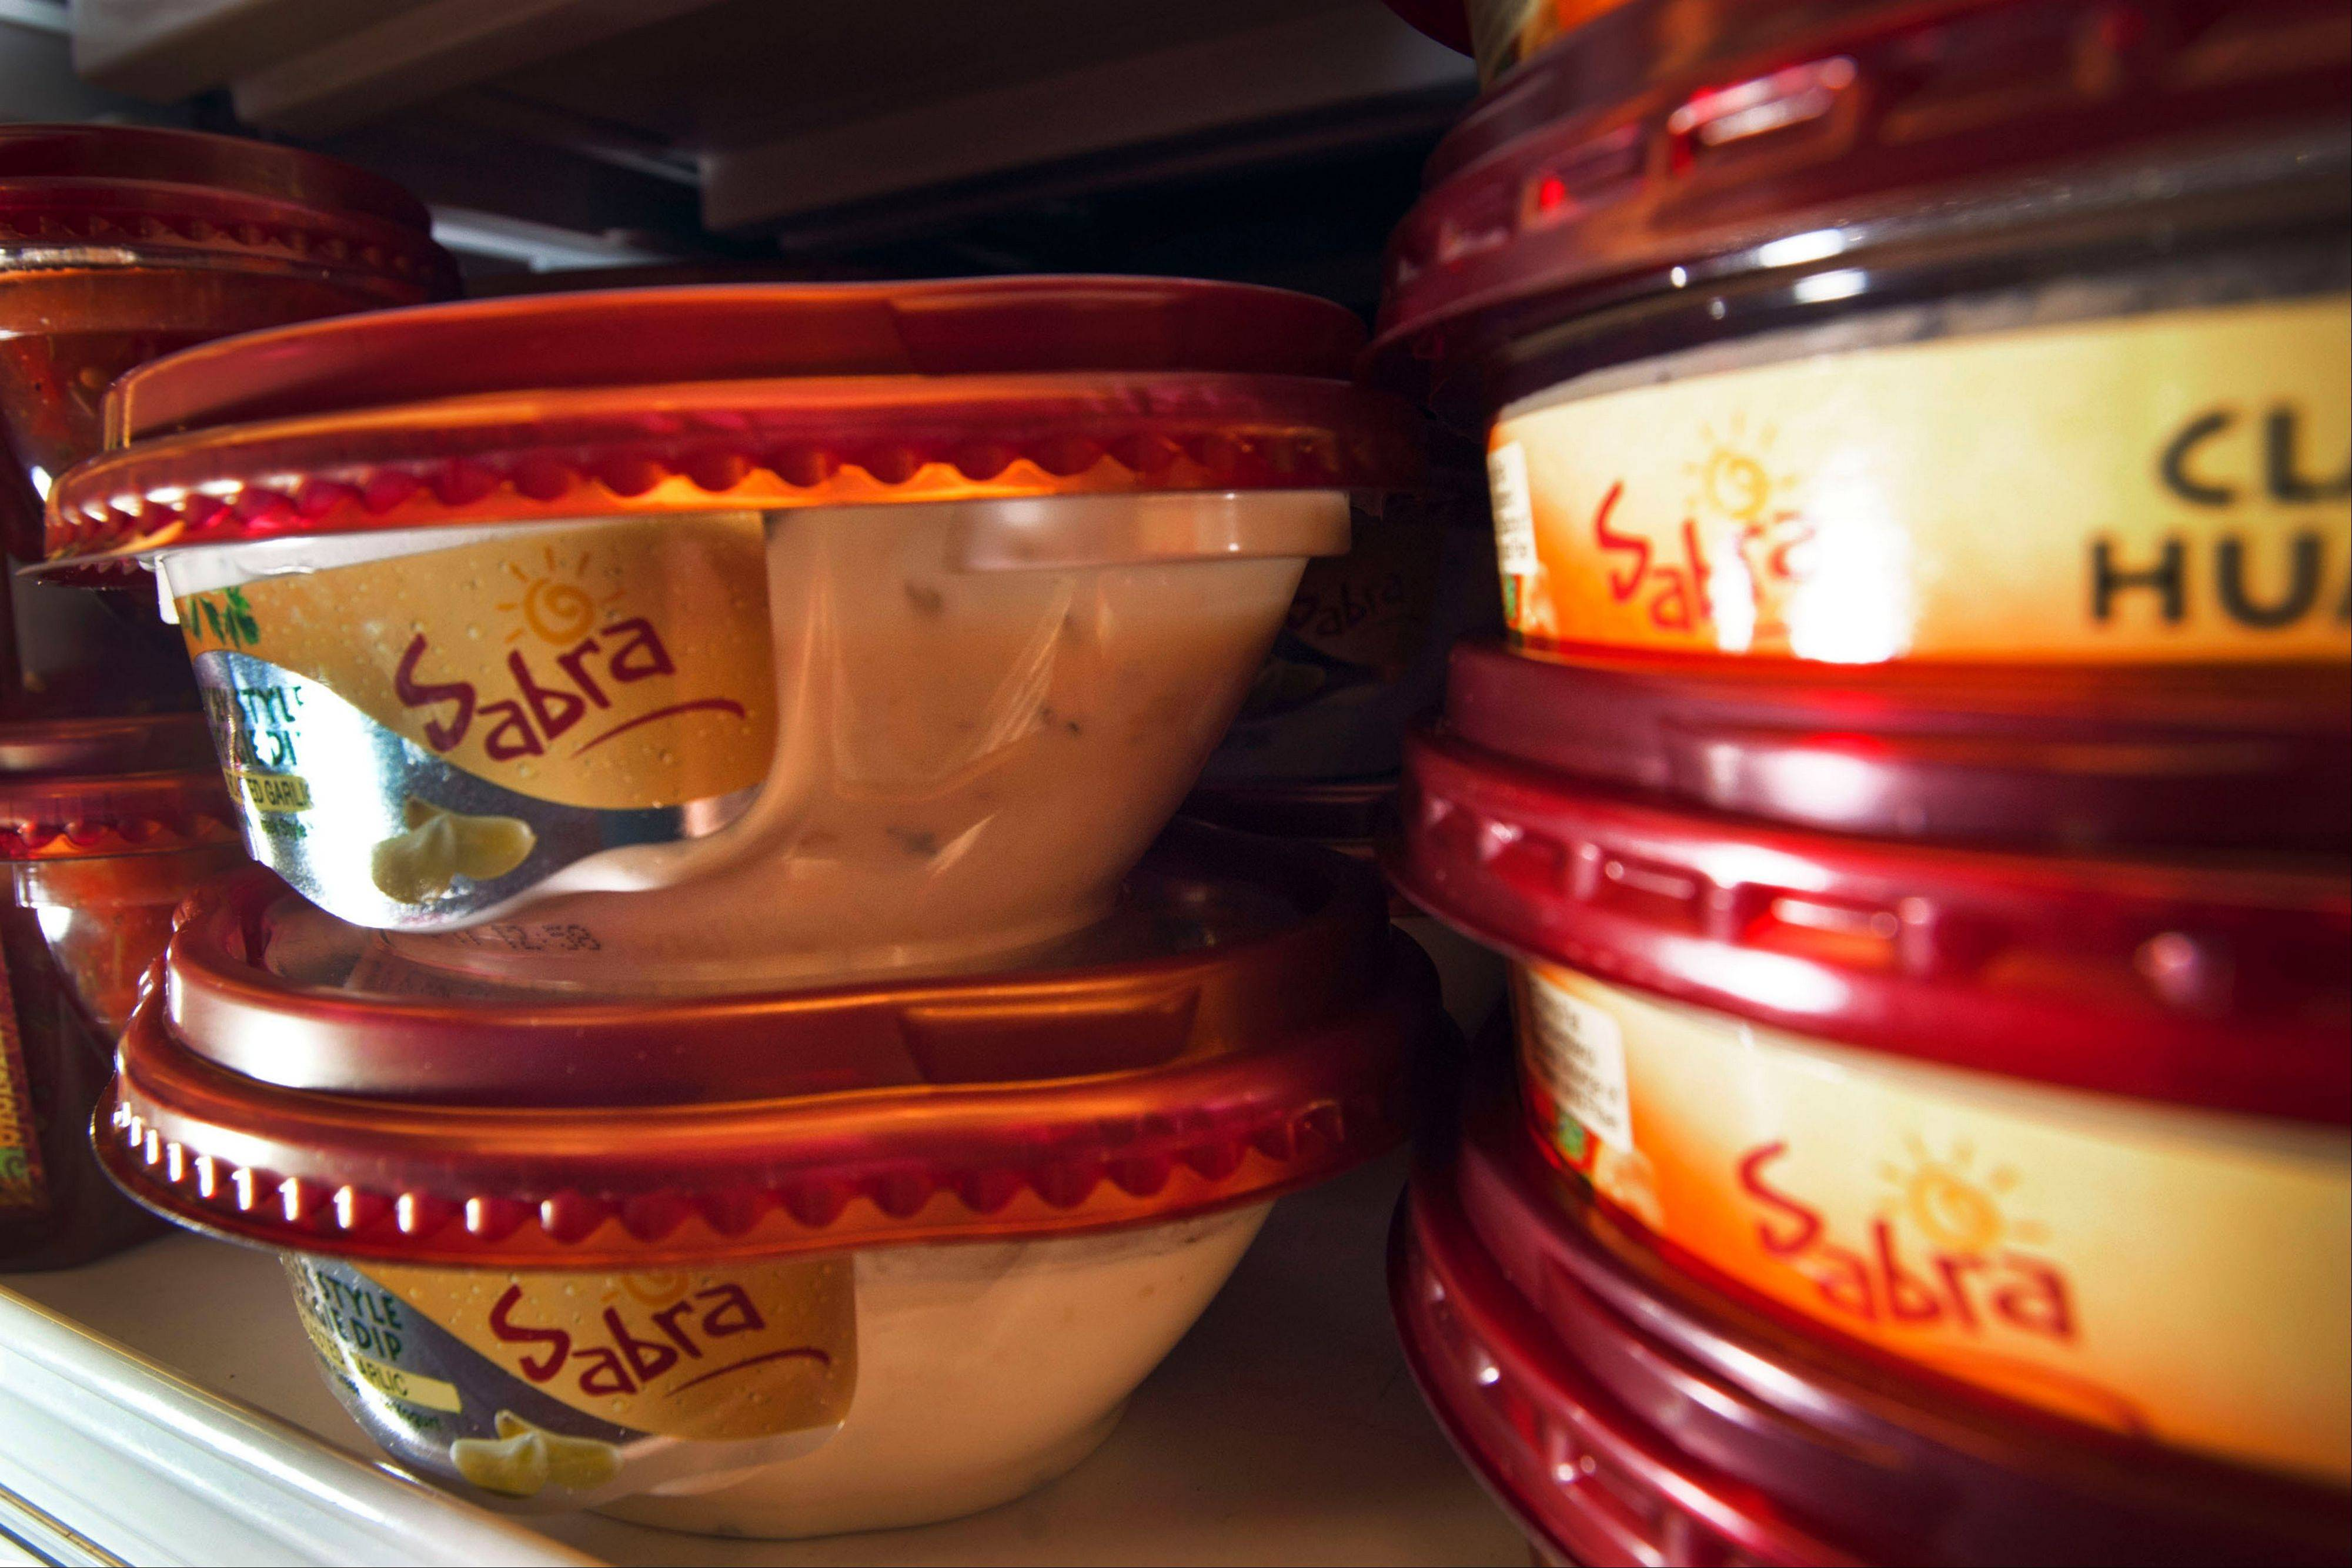 Sabra soon will kick off as the National Football League�s official dips sponsor.